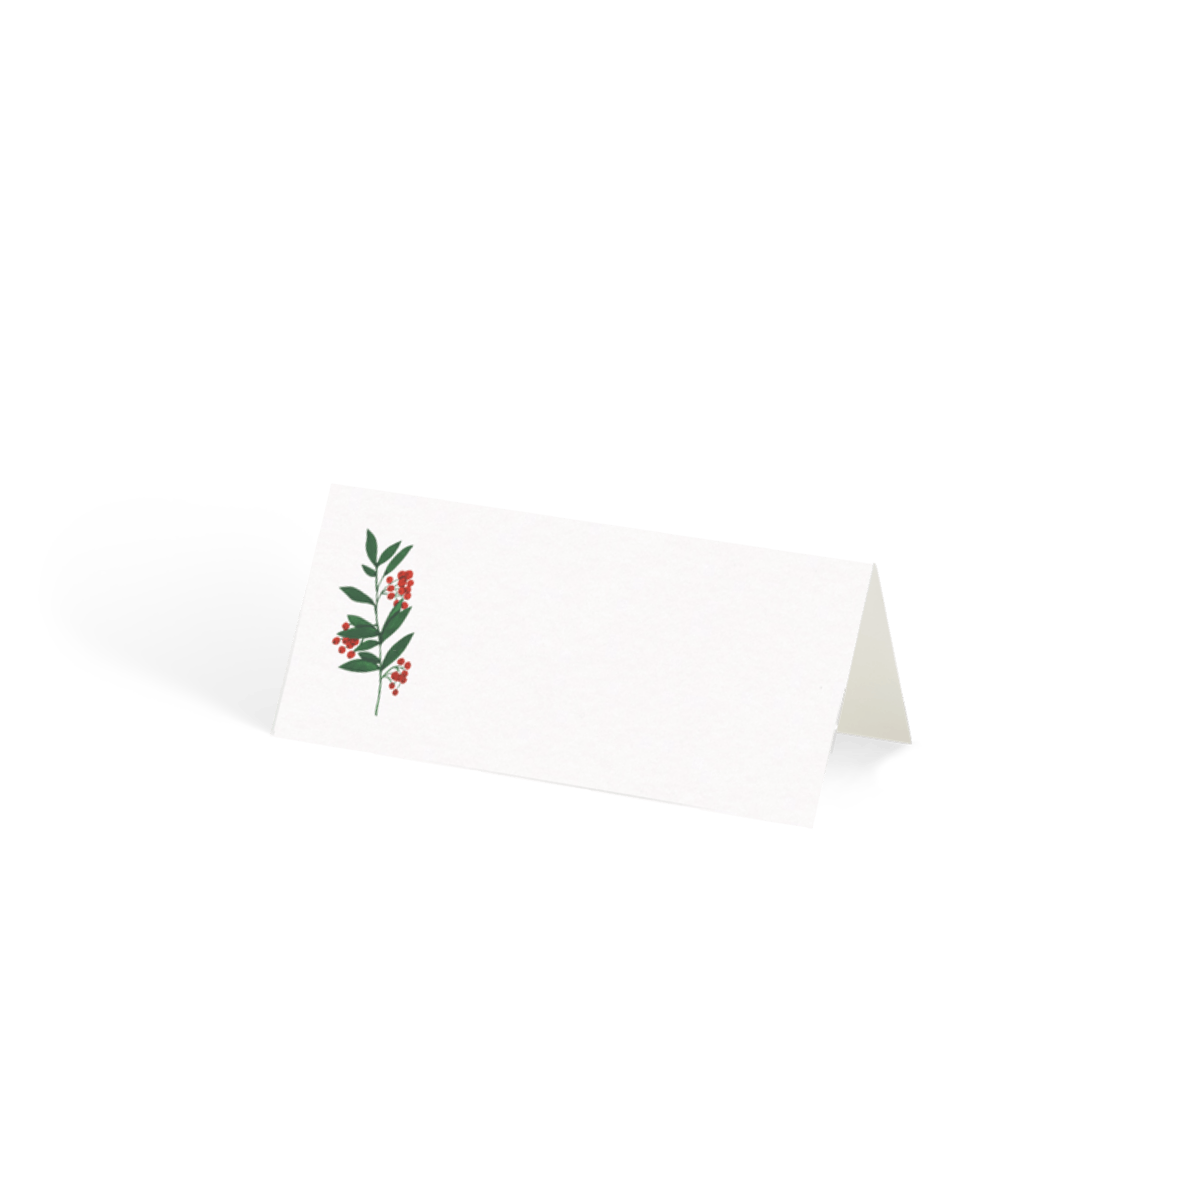 Https%3a%2f%2fwww.papier.com%2fproduct image%2f81991%2f8%2fwinter red berries 19764 front 1562060755.png?ixlib=rb 1.1